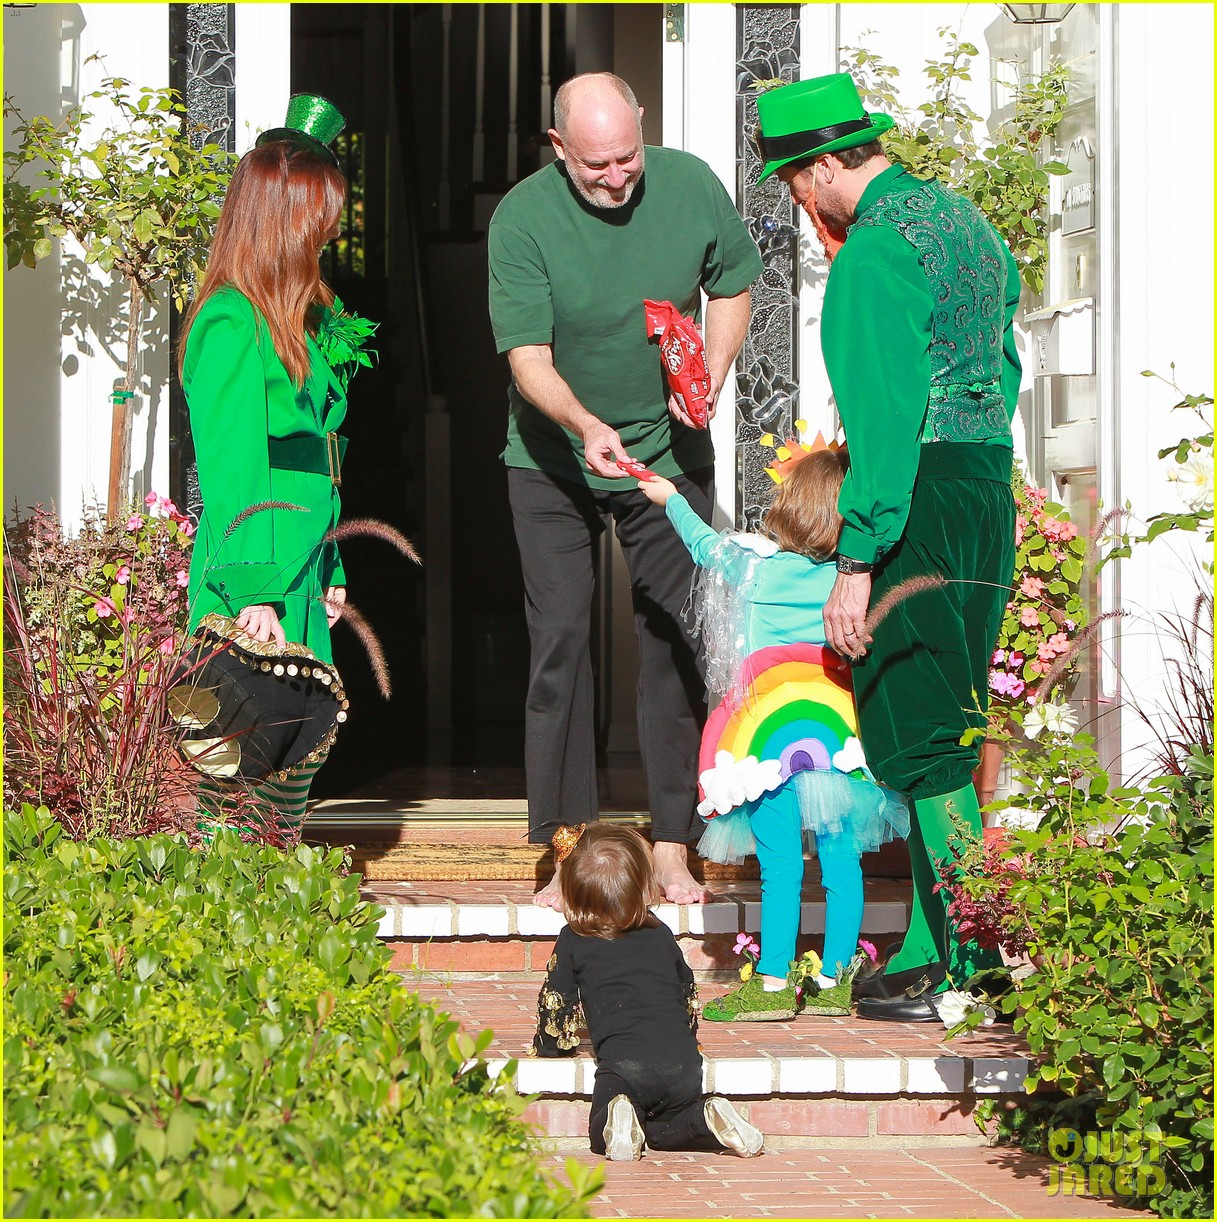 alyson hannigan family leprechaun halloween costume 2013 092983815